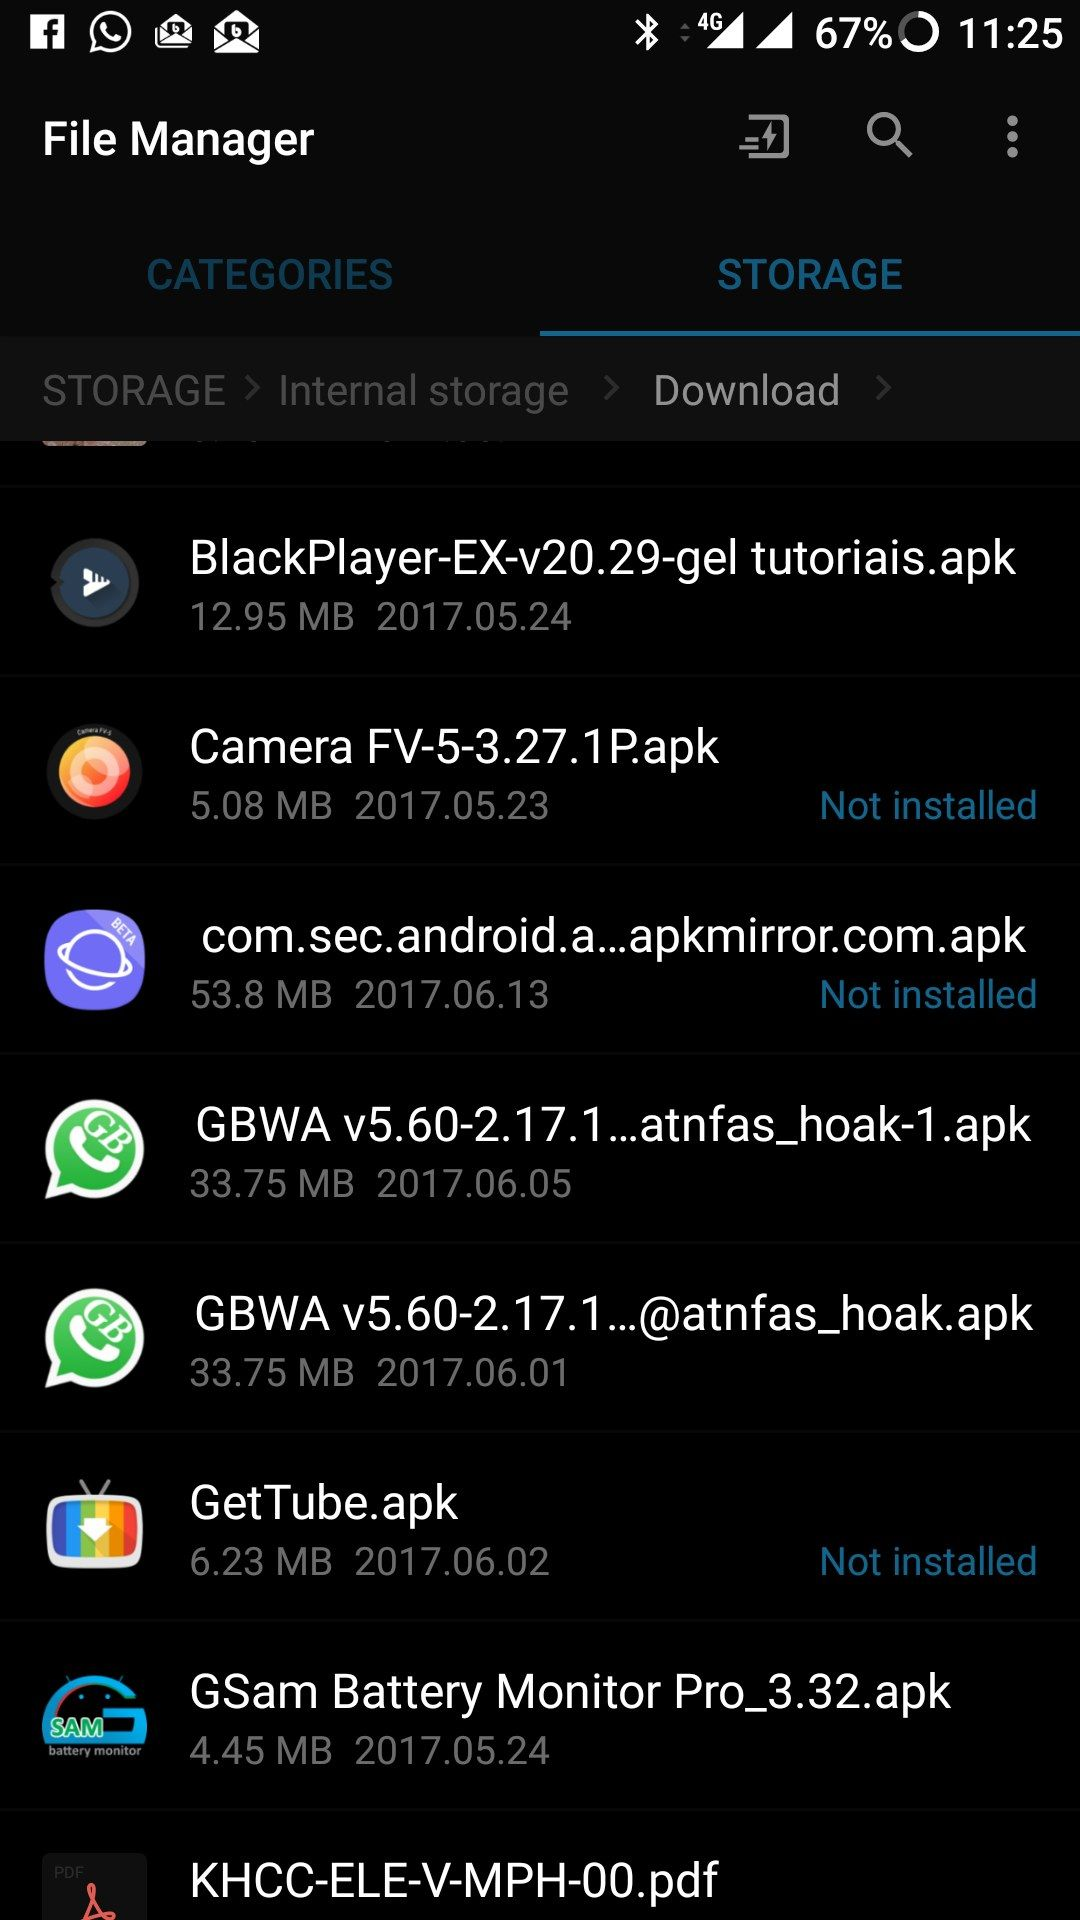 In built File Manager not able to install apk file - OnePlus